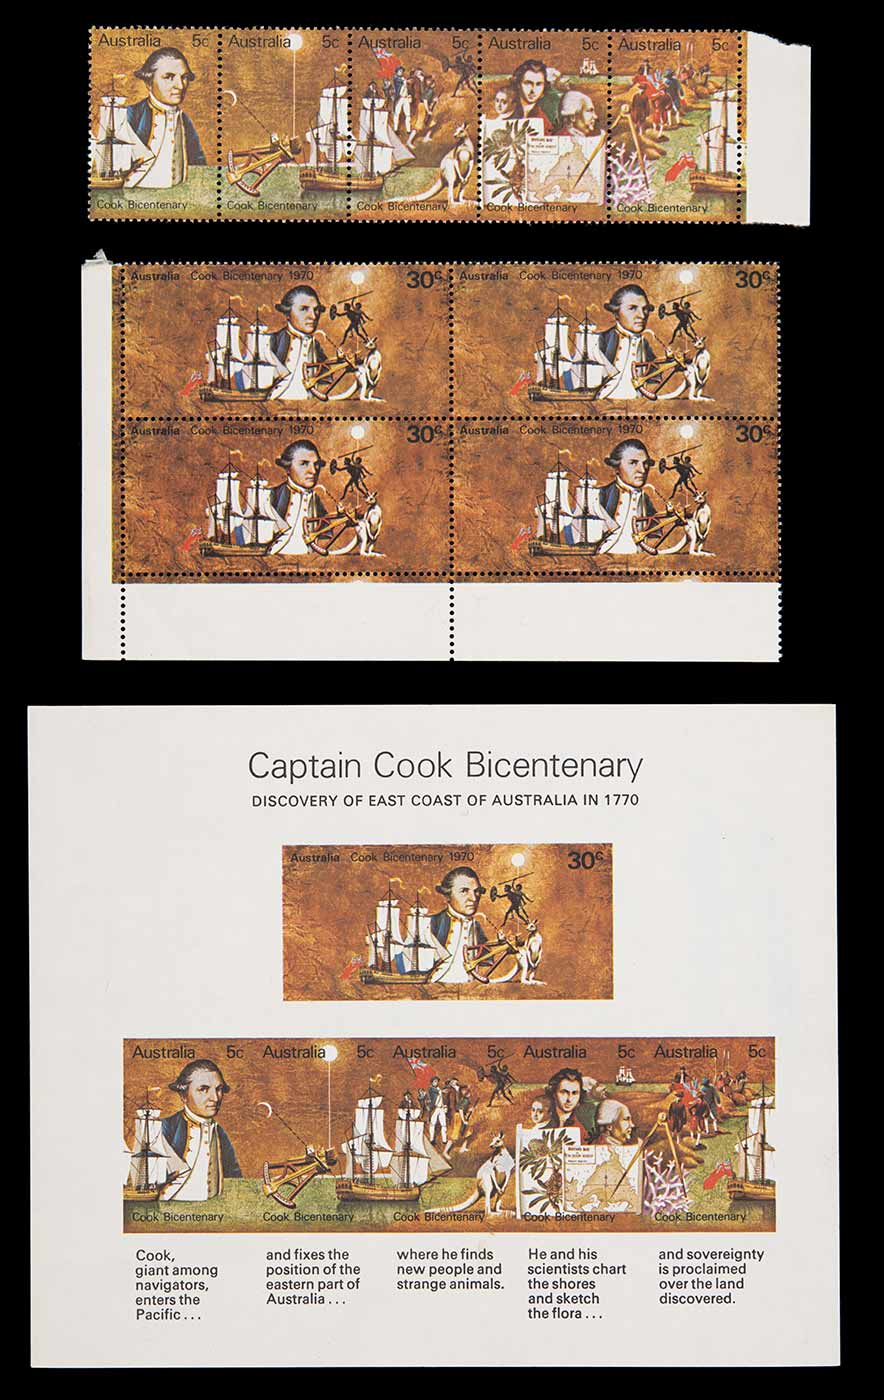 Set of stamps for the 1970 Captain Cook Bicentenary. - click to view larger image